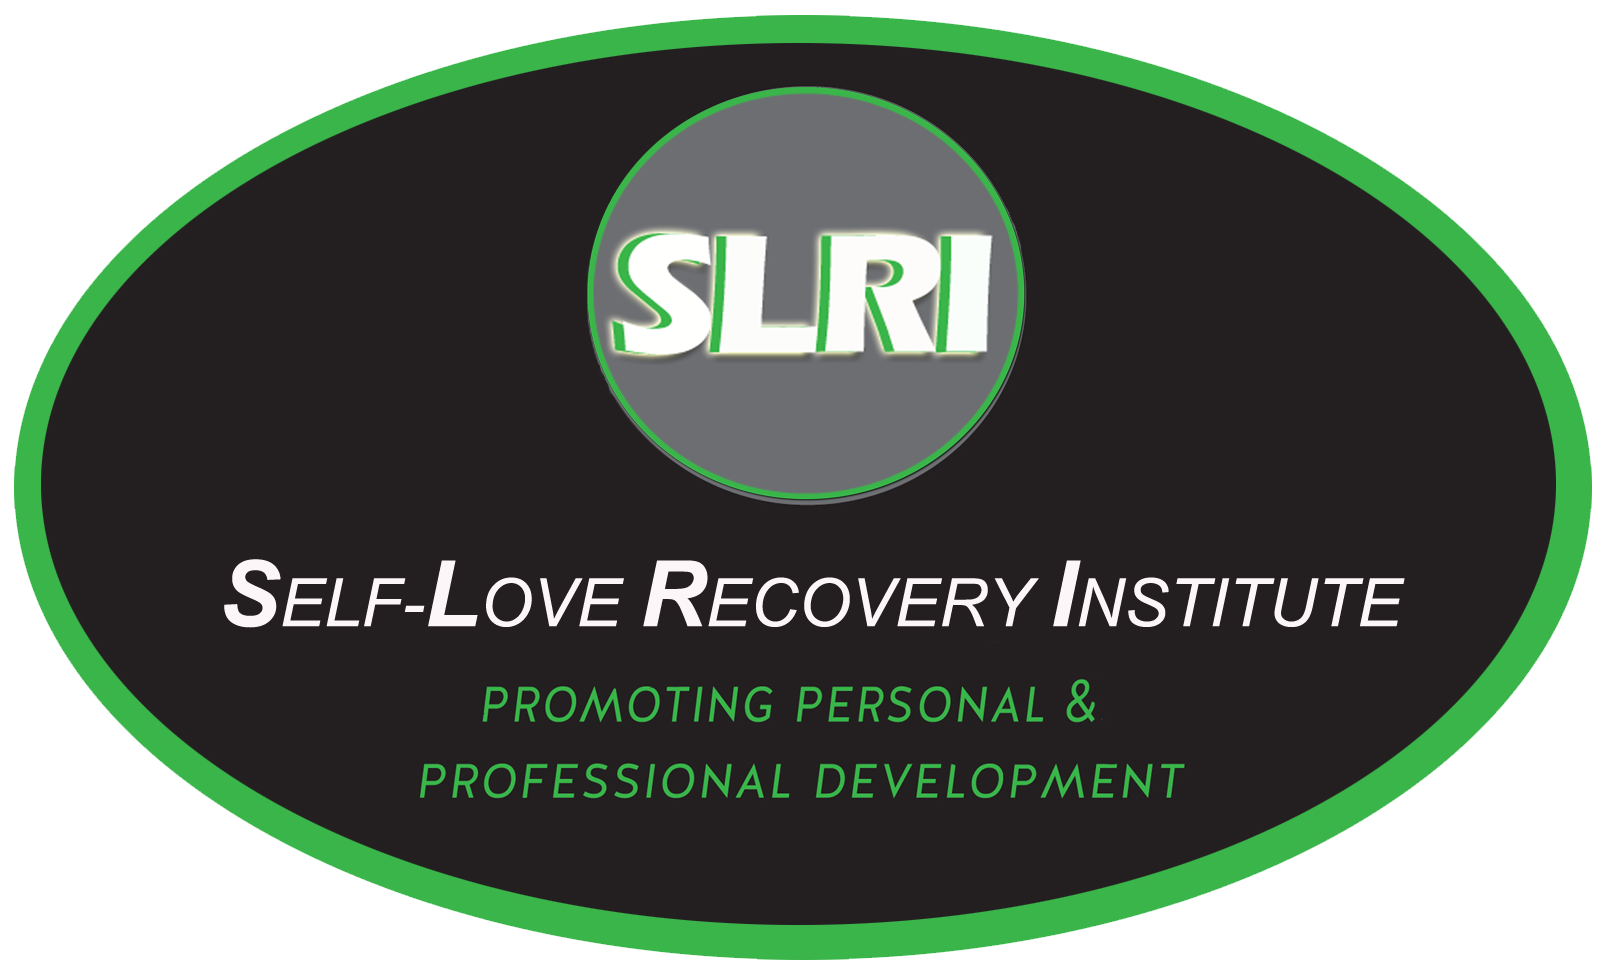 SELF LOVE RECOVERY INSTITUTE